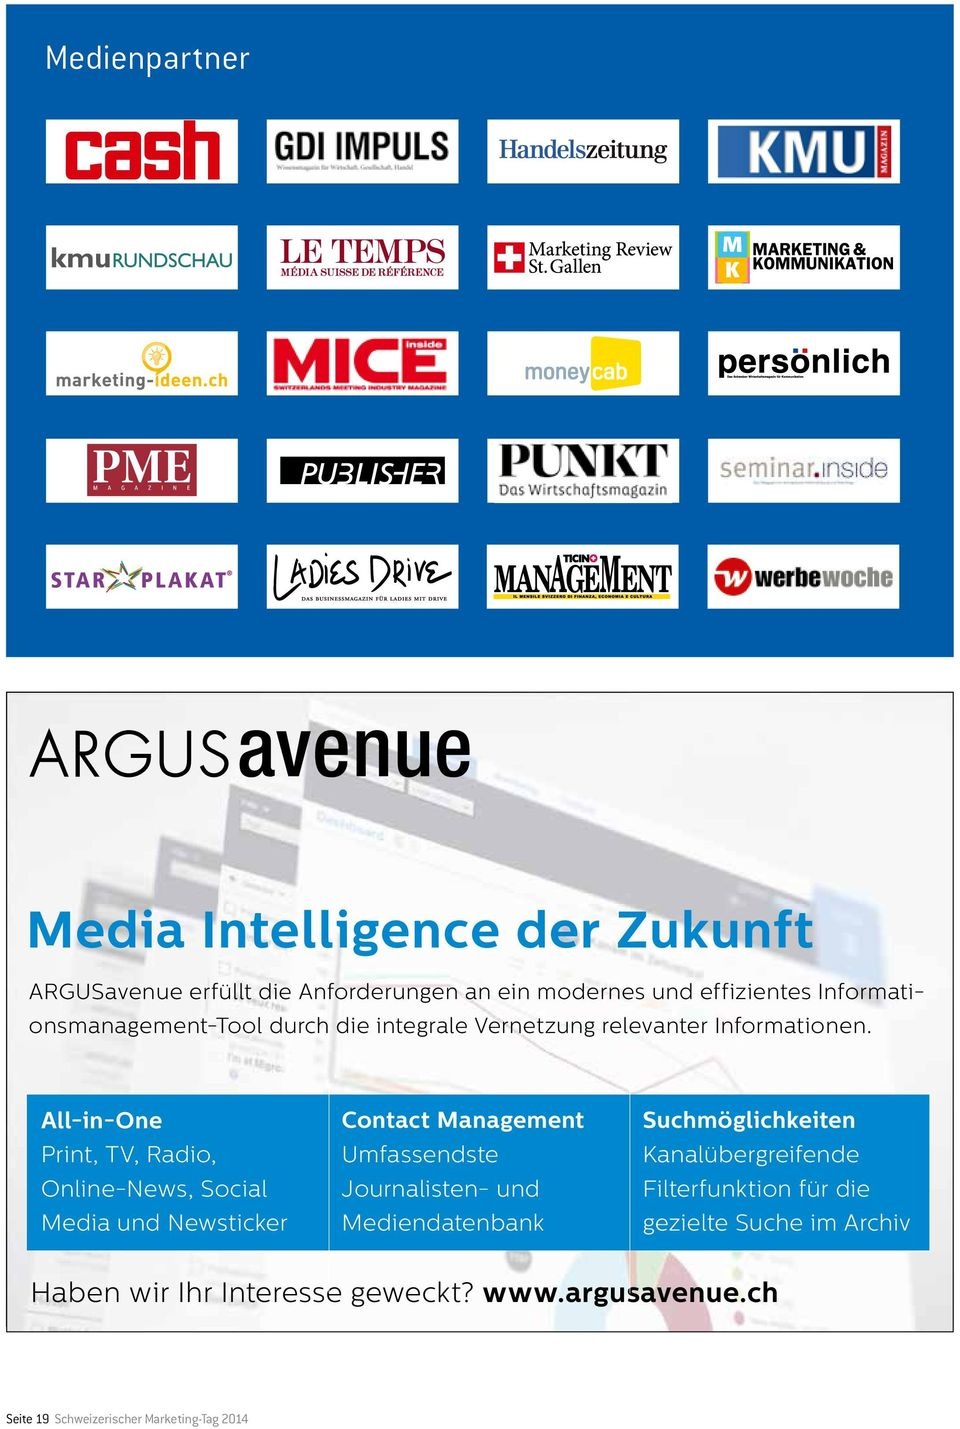 All-in-One Print, TV, Radio, Online-News, Social Media und Newsticker Contact Management Umfassendste Journalisten- und